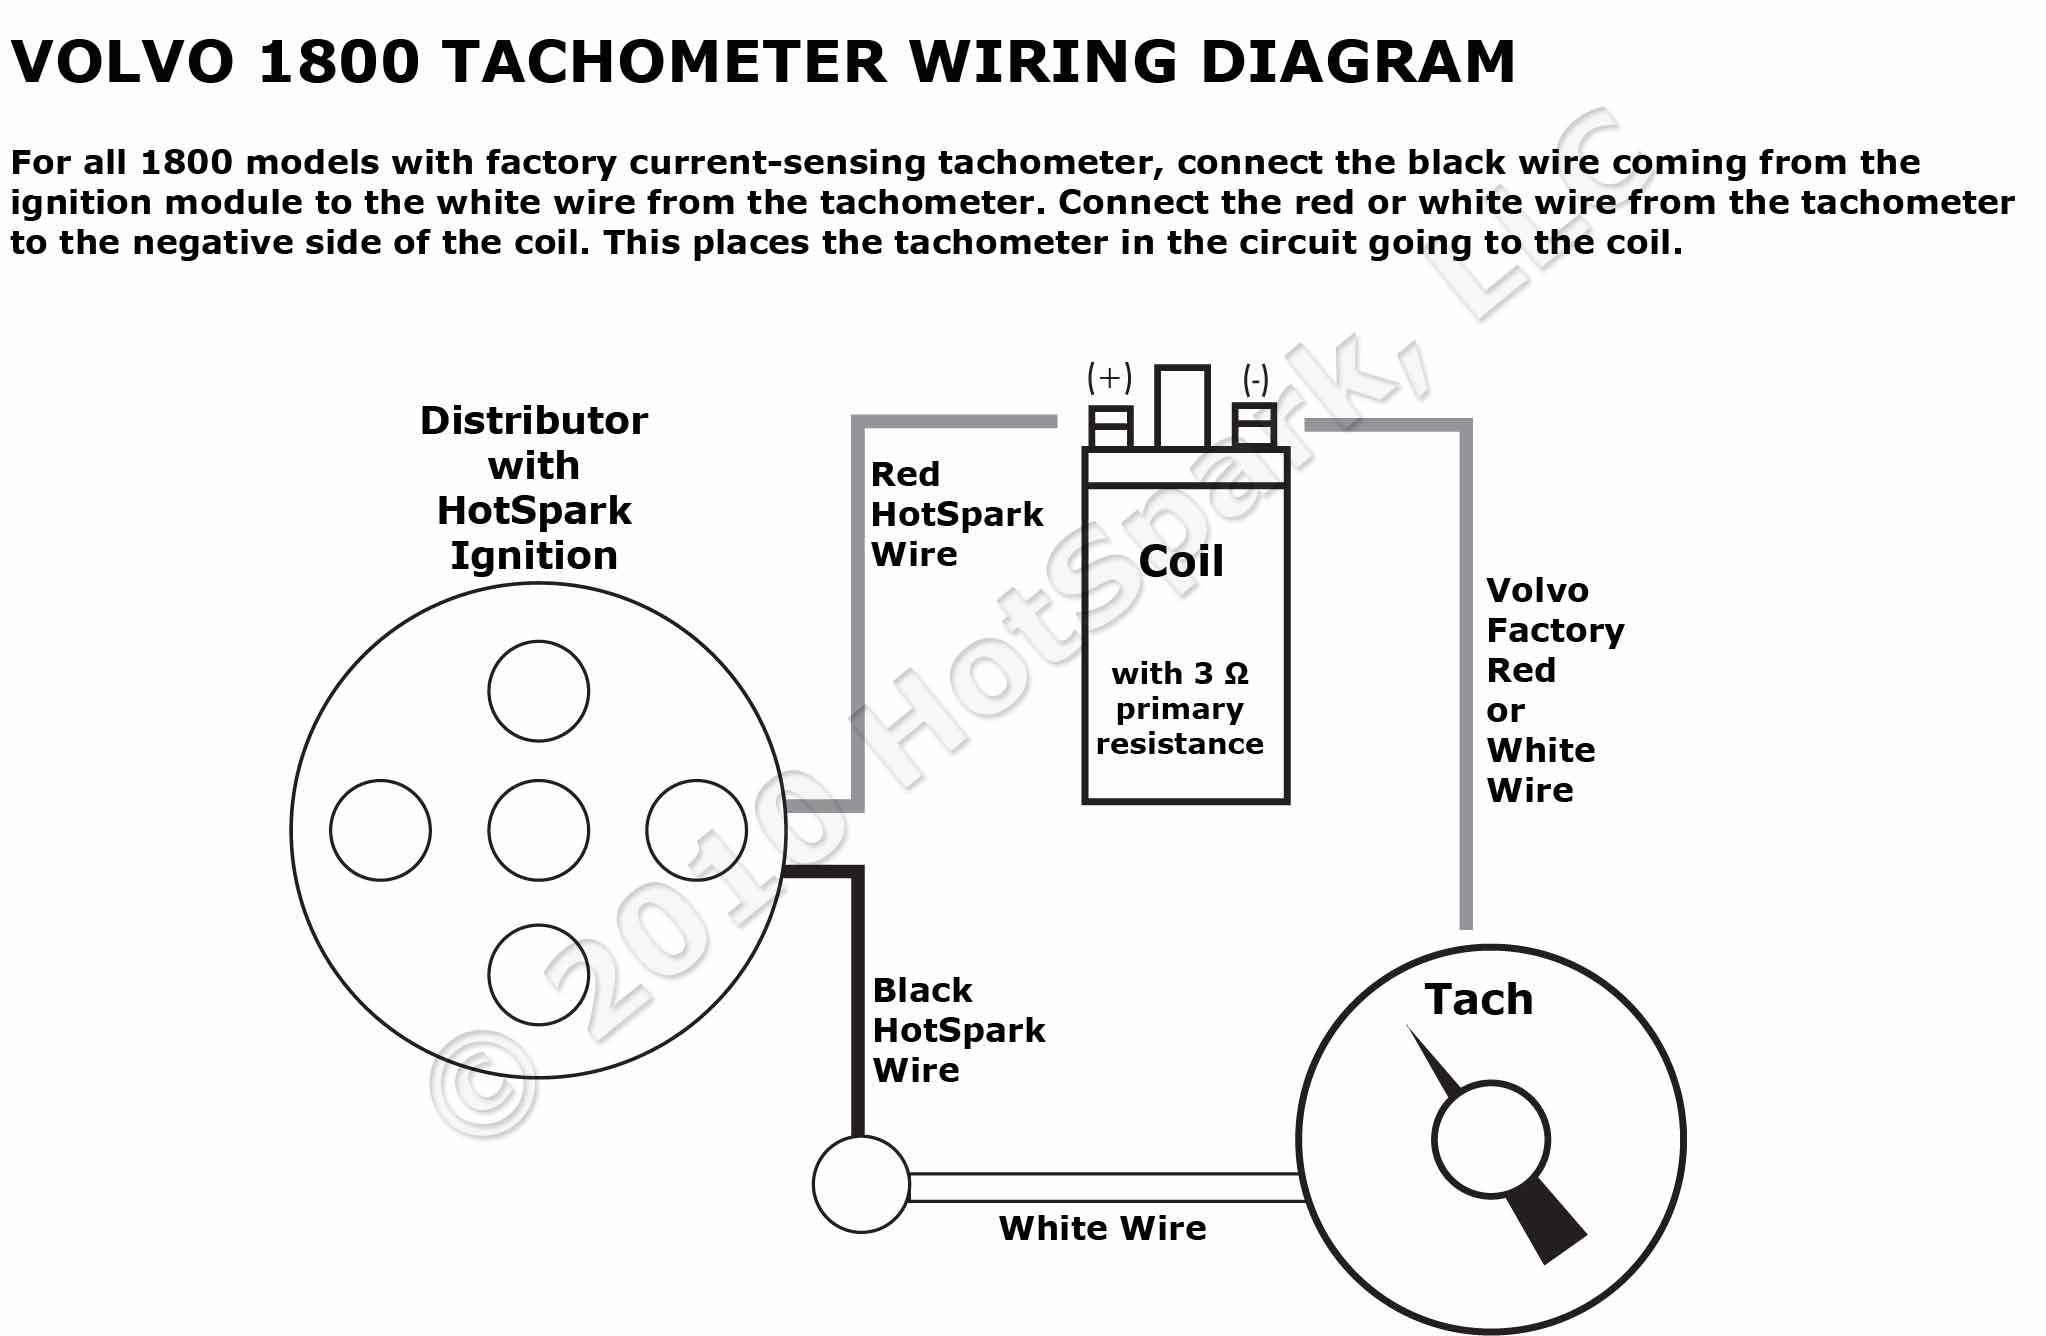 Volvo 1800 Tachometer and Hot Spark Wiring Diagram tach wiring diagram autometer tach wiring diagram \u2022 wiring faze tach wiring diagram at crackthecode.co